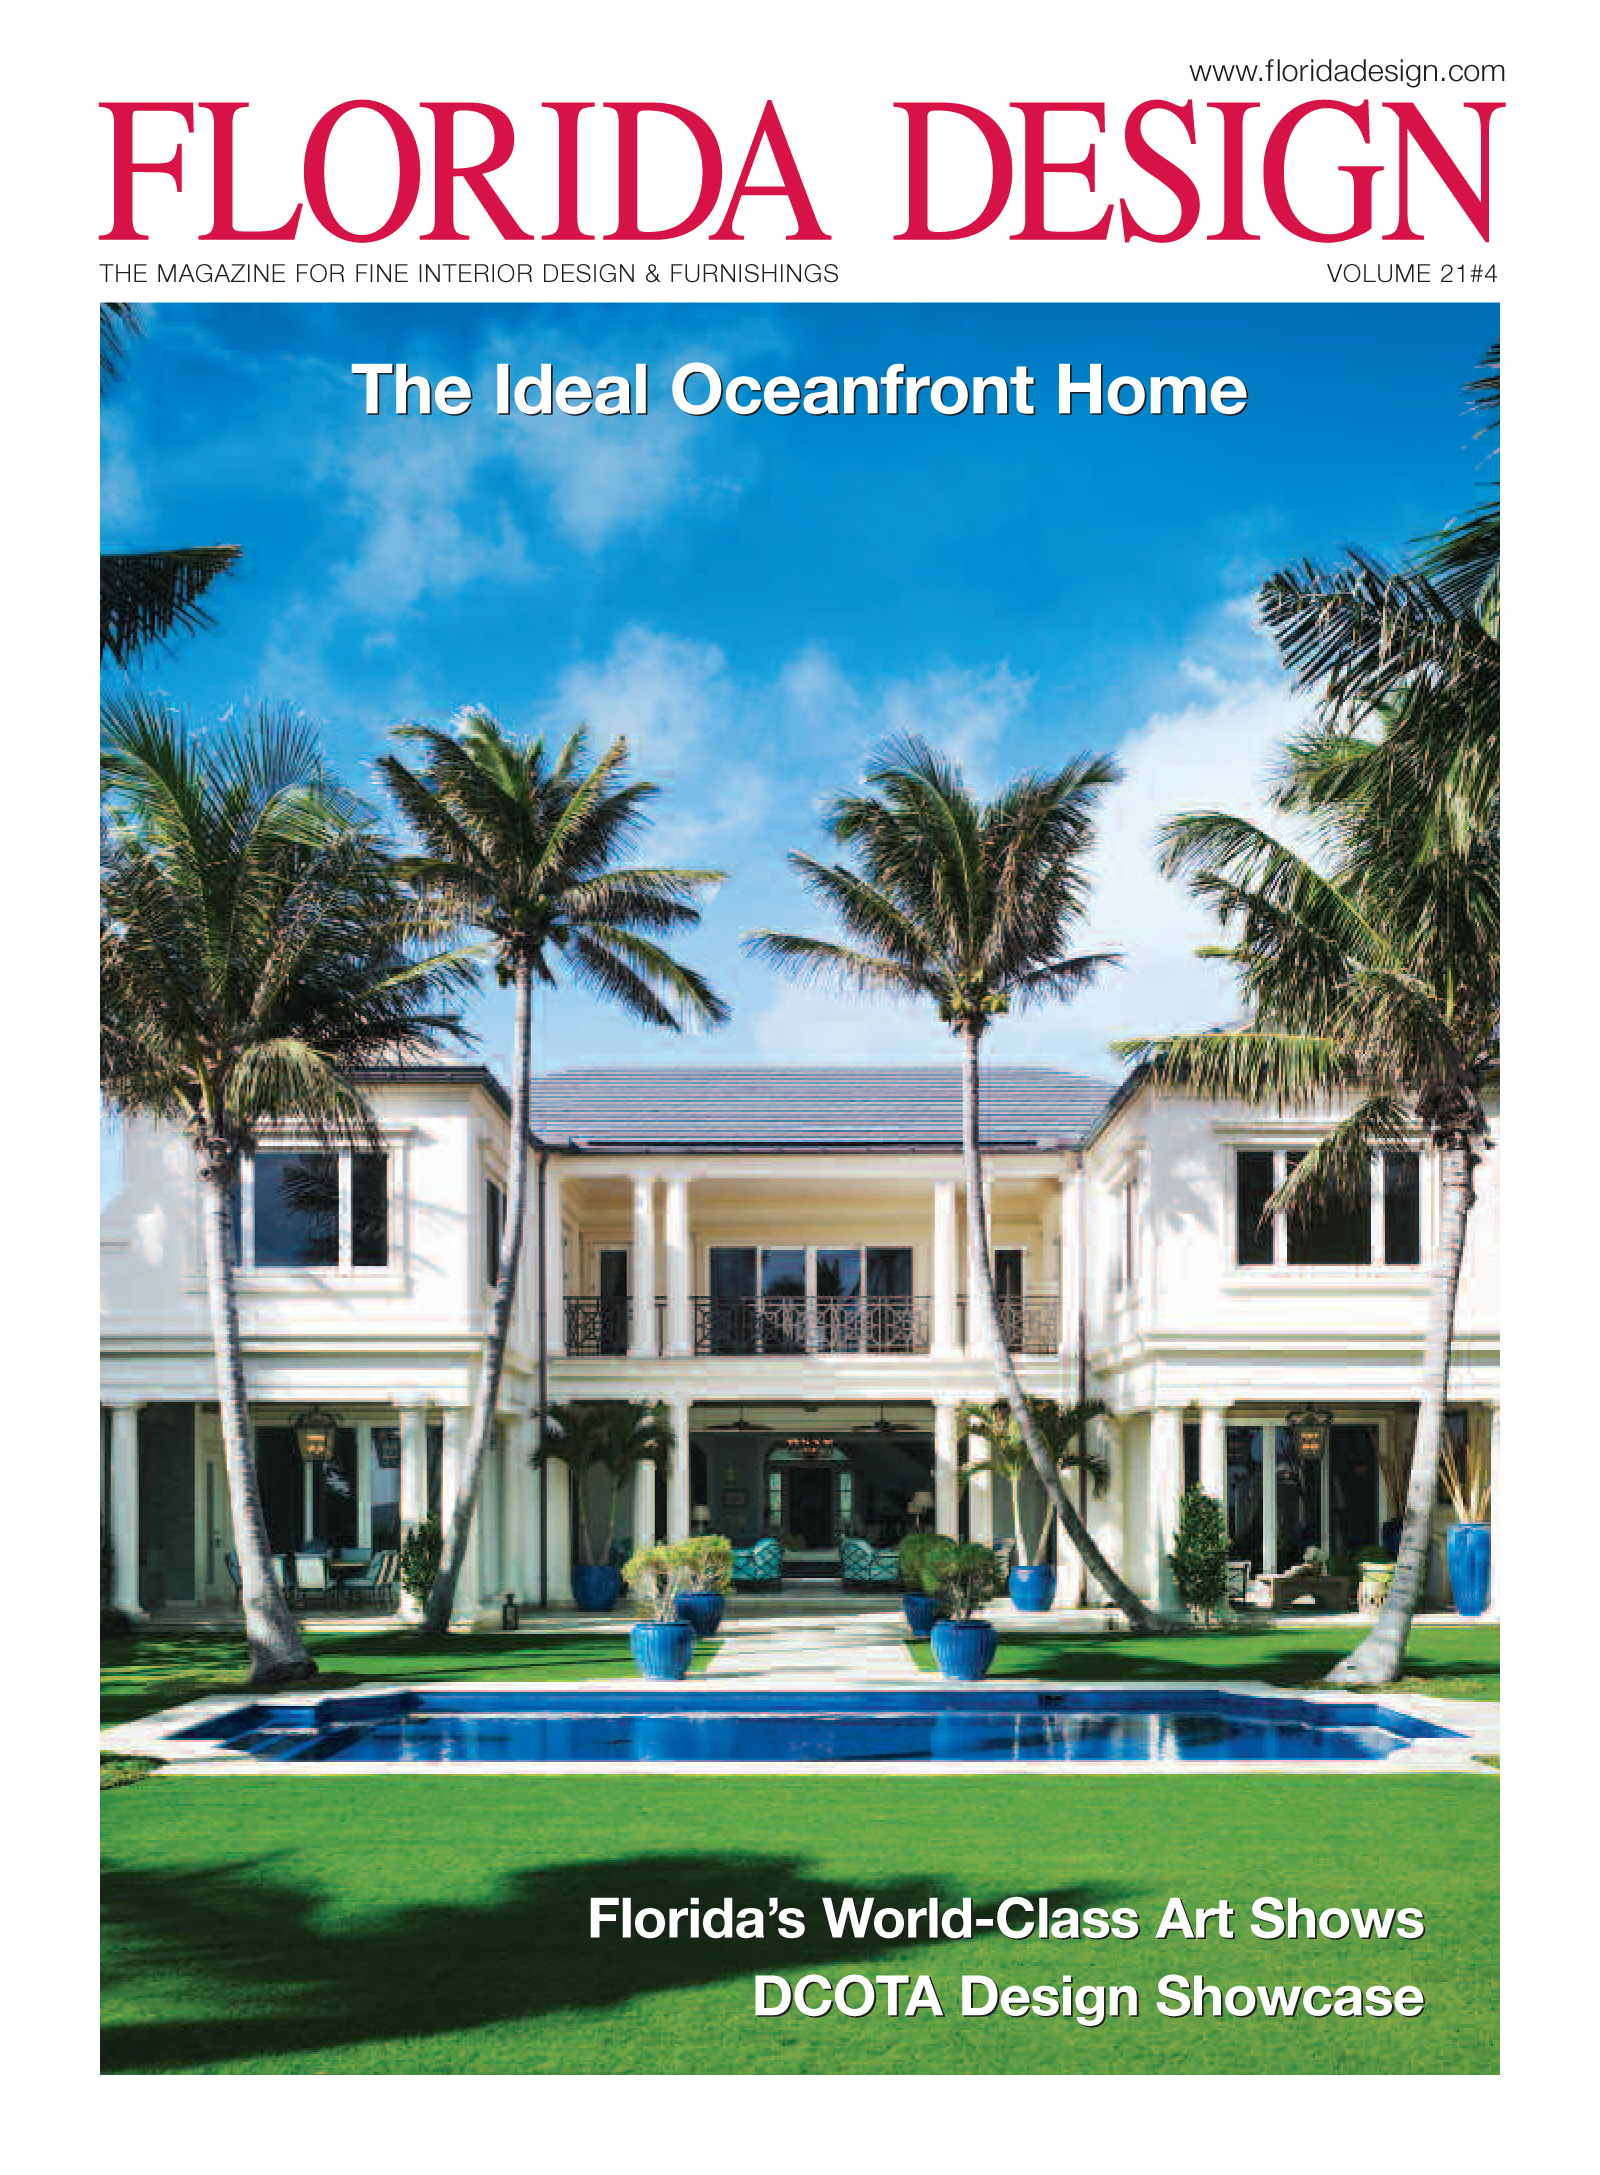 Palm Beach Gardens Intracoastal Residence Florida Design Cover.jpg